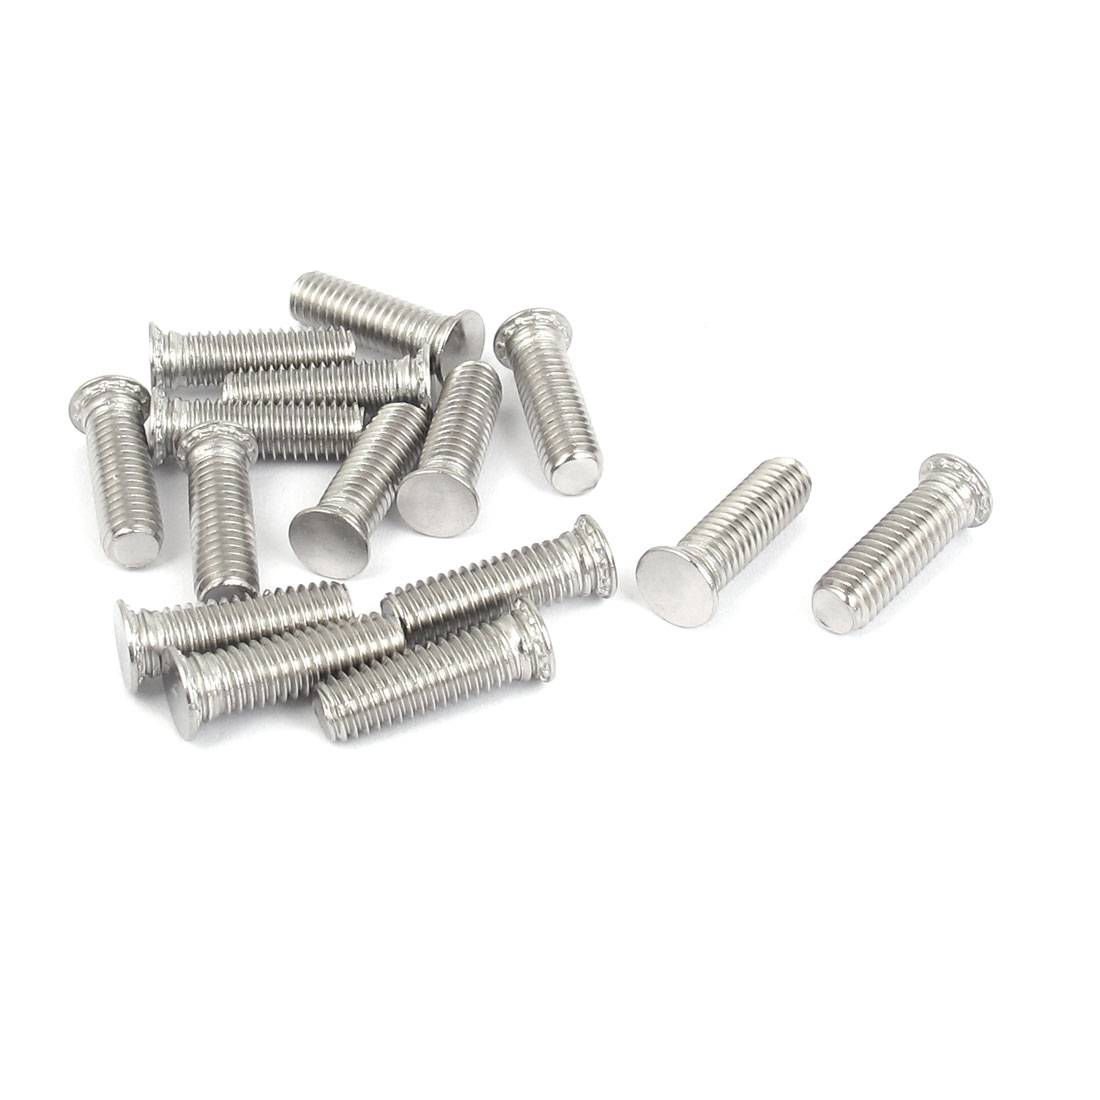 M6x20mm Flush Head Stainless Steel Self Clinching Threaded Studs Fastener 15pcs